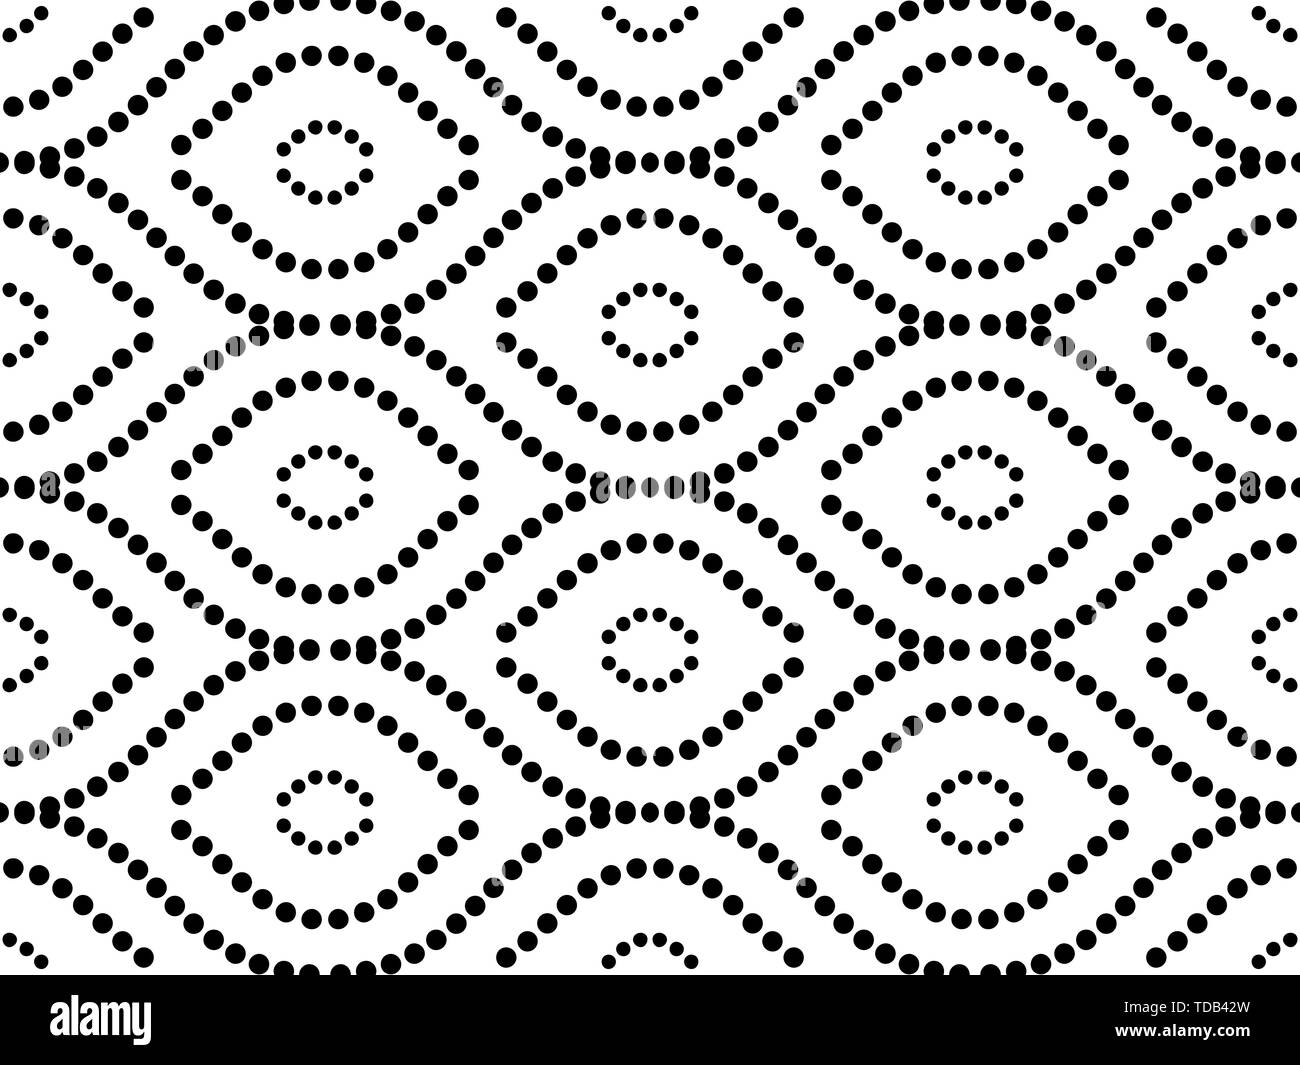 Geometric Seamless Vector Pattern - Stock Image